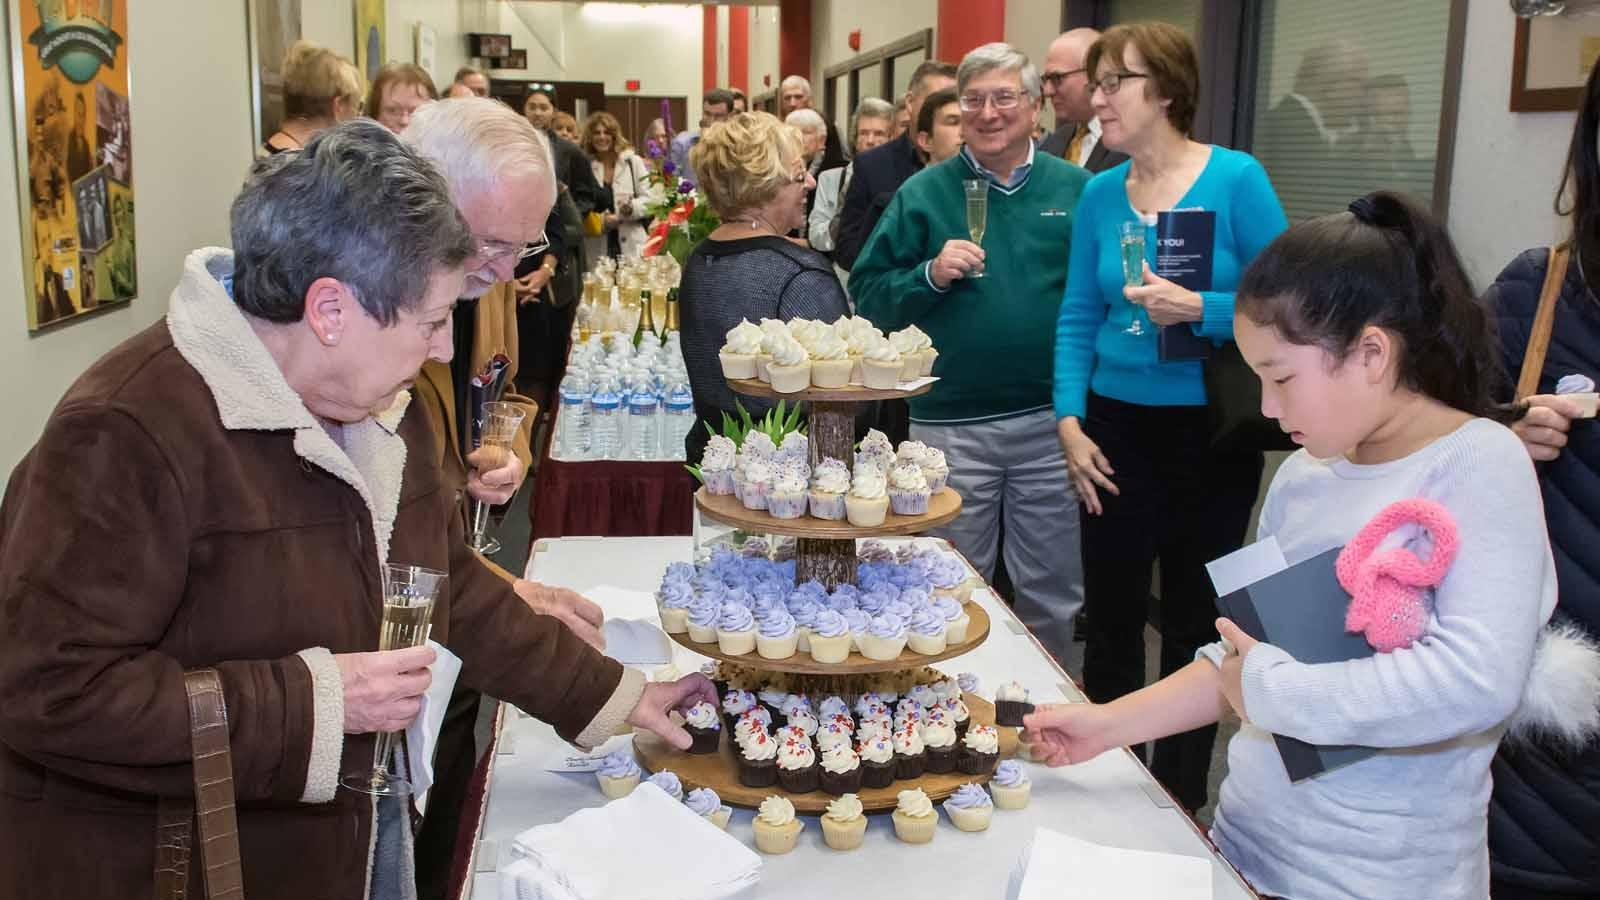 Guests celebrated with champagne and cupcakes.